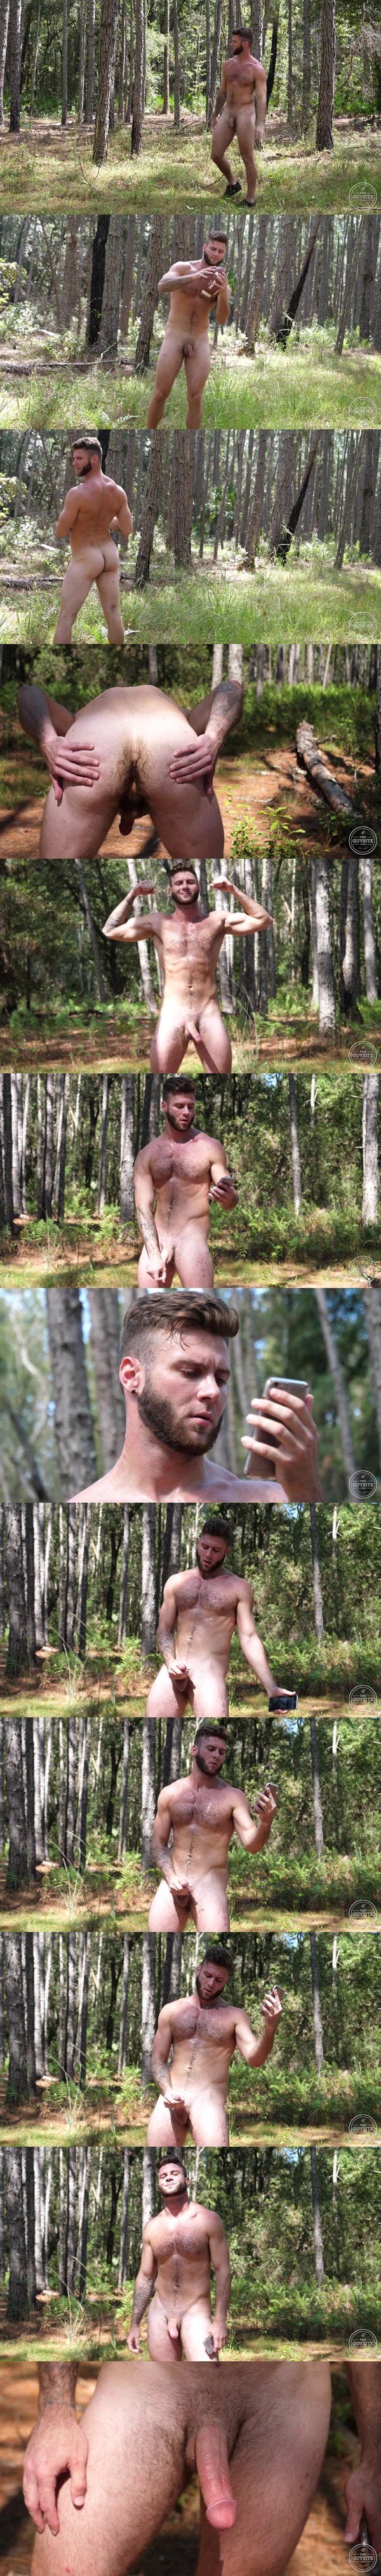 Sexy hairy straight football player Bruce jerks off in In the Forest 4 at Theguysite